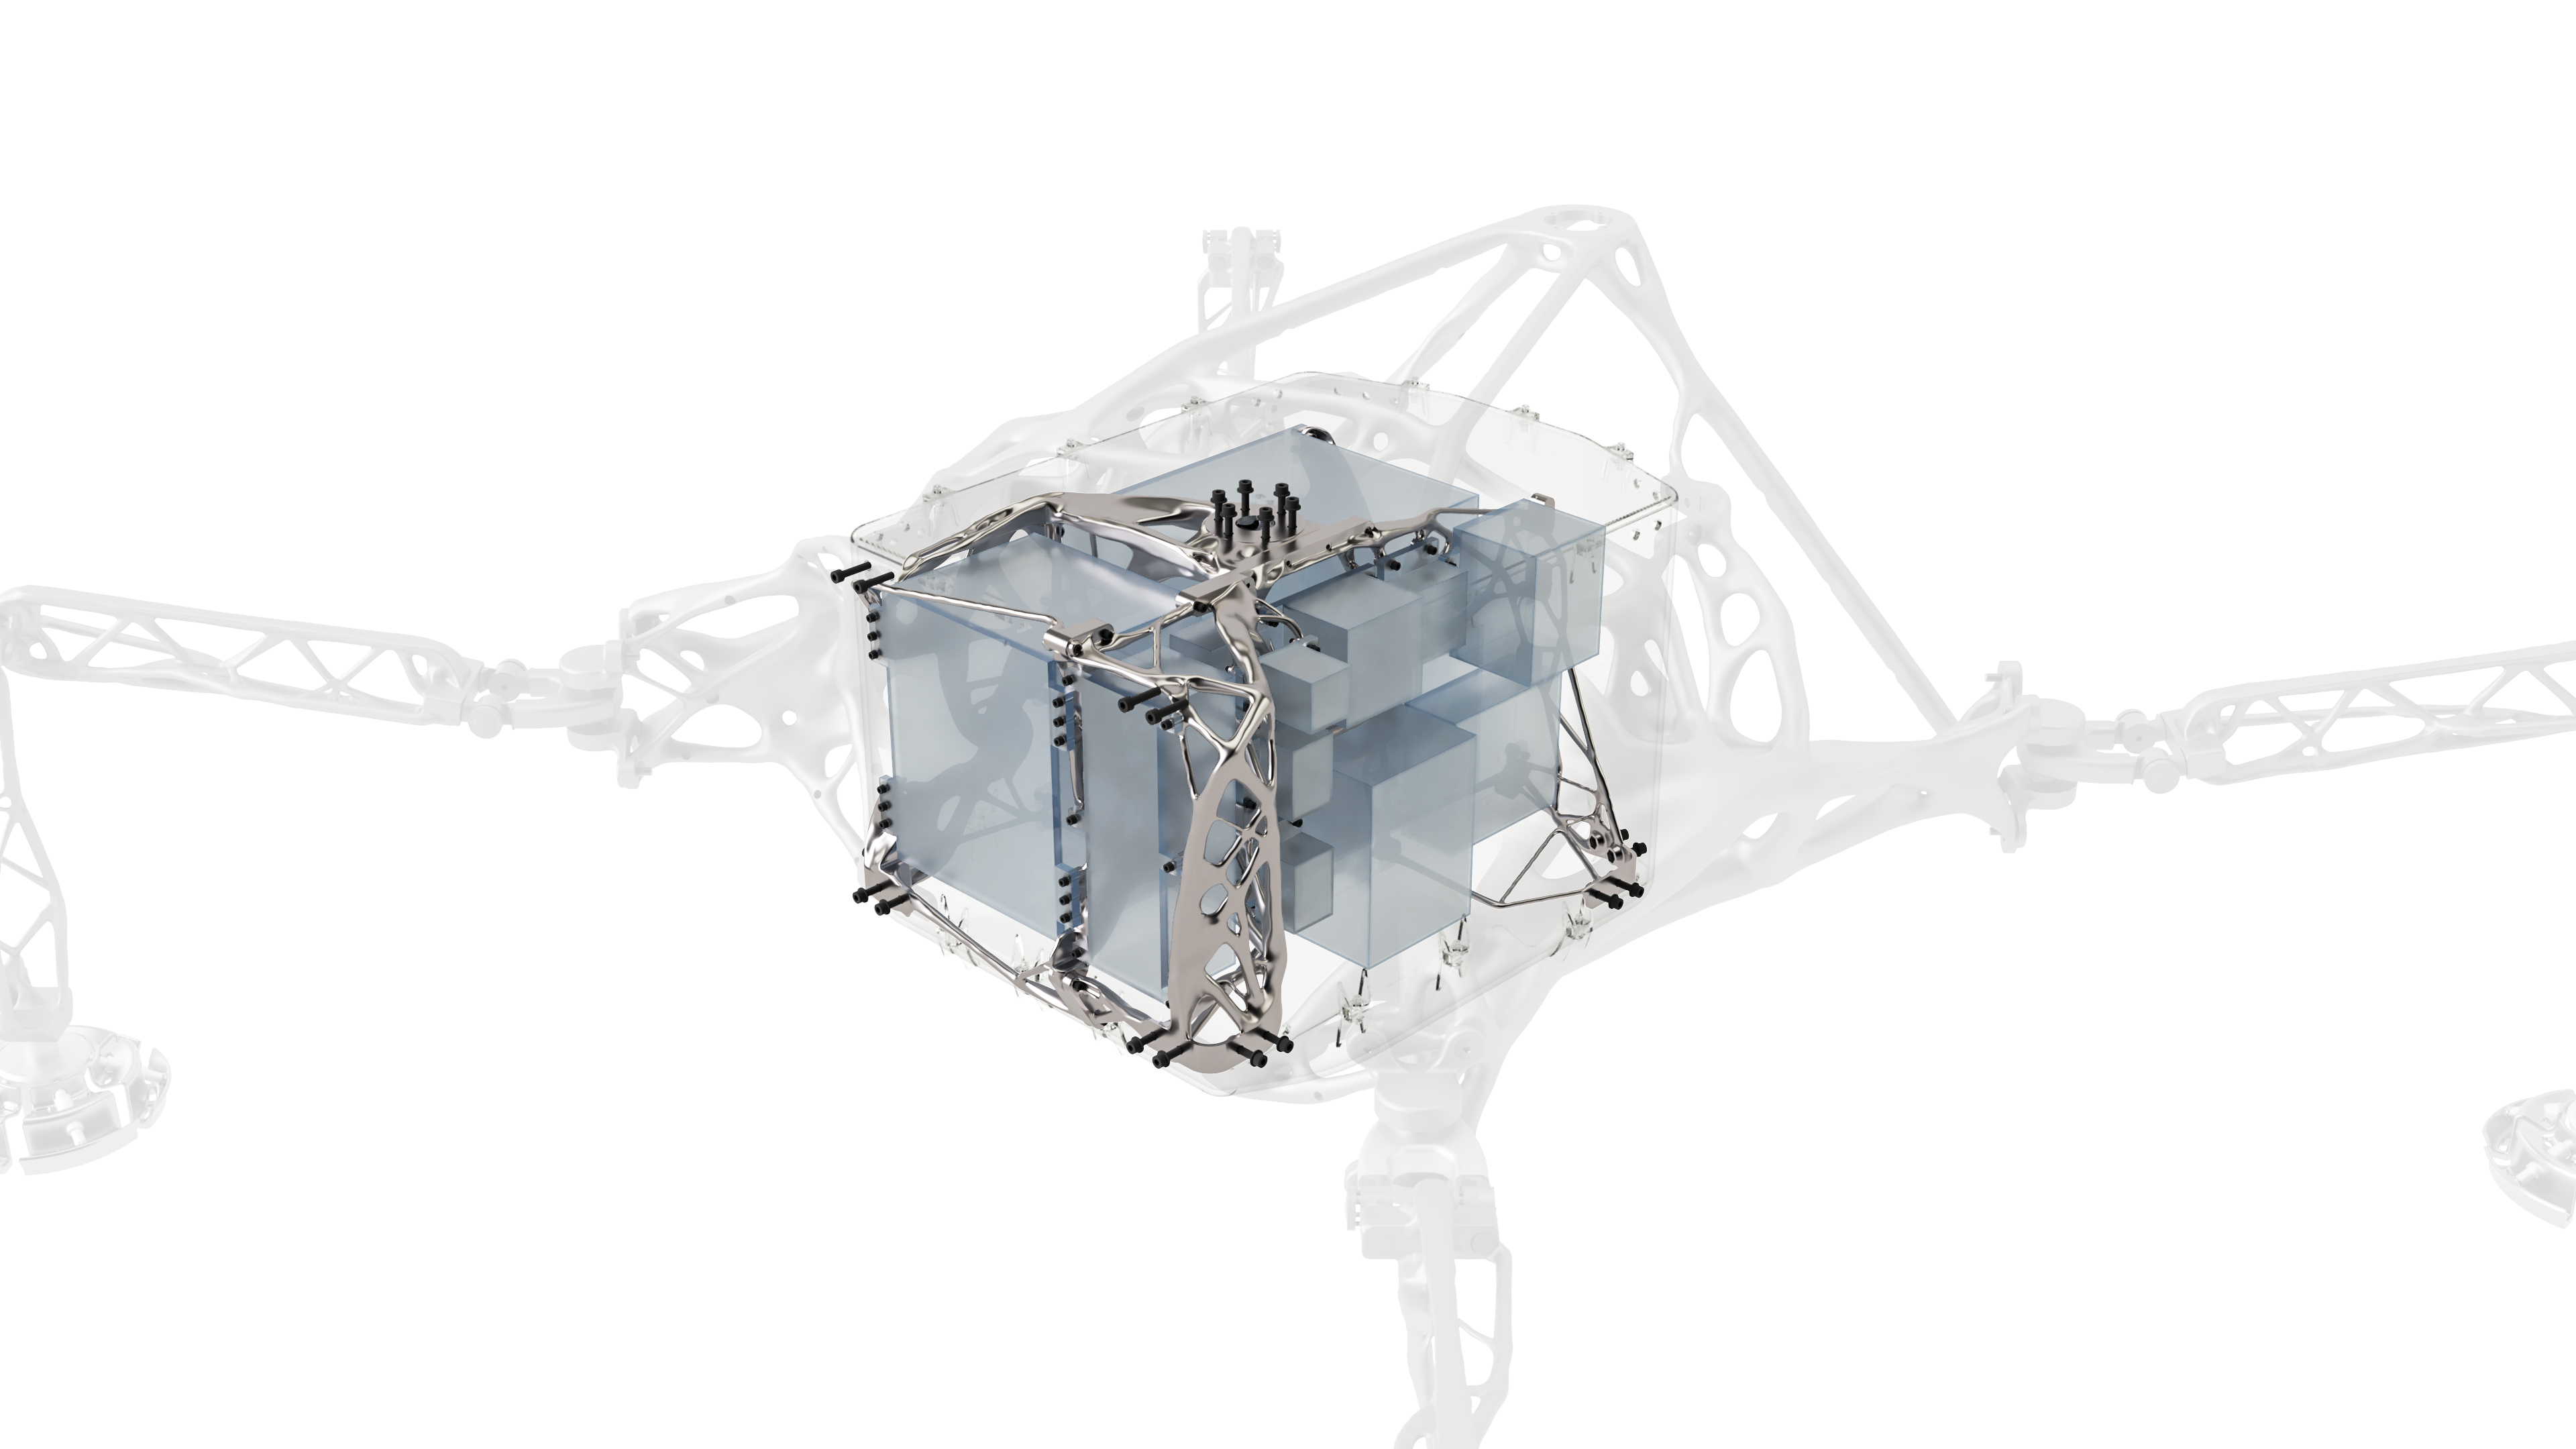 Space Exploration Lander Interna; Structure and Payloads